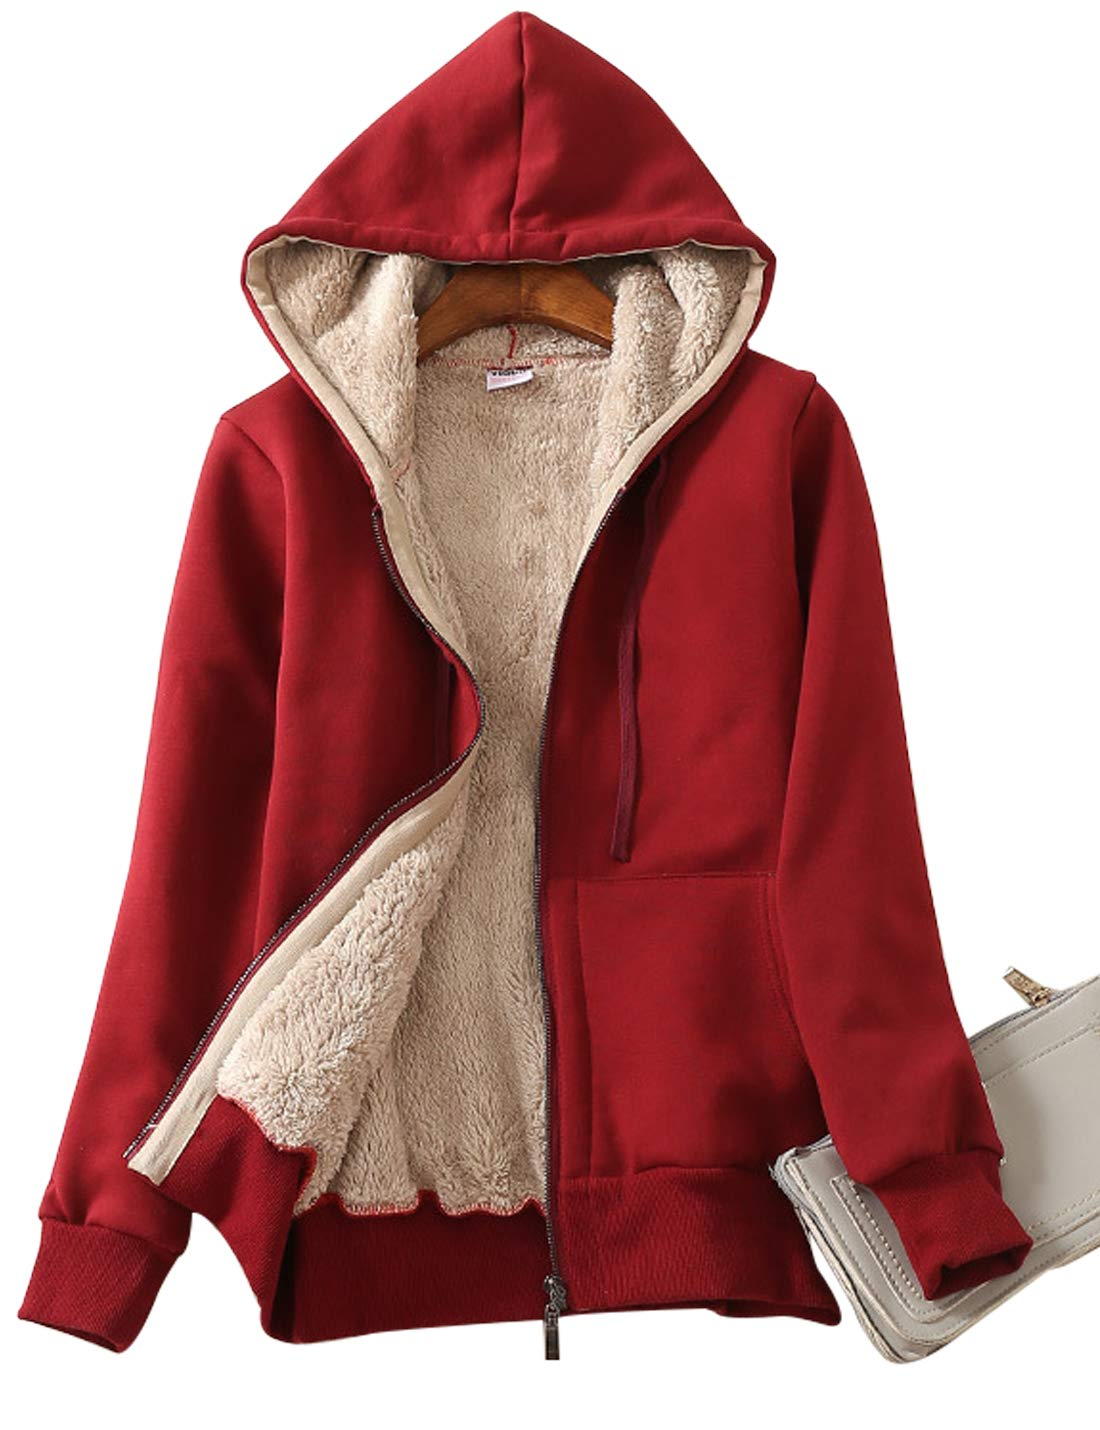 Yeokou Women's Casual Full Zip up Sherpa Lined Hoodie Sweatshirt Jacket Coat (X-Large, Wine Red)